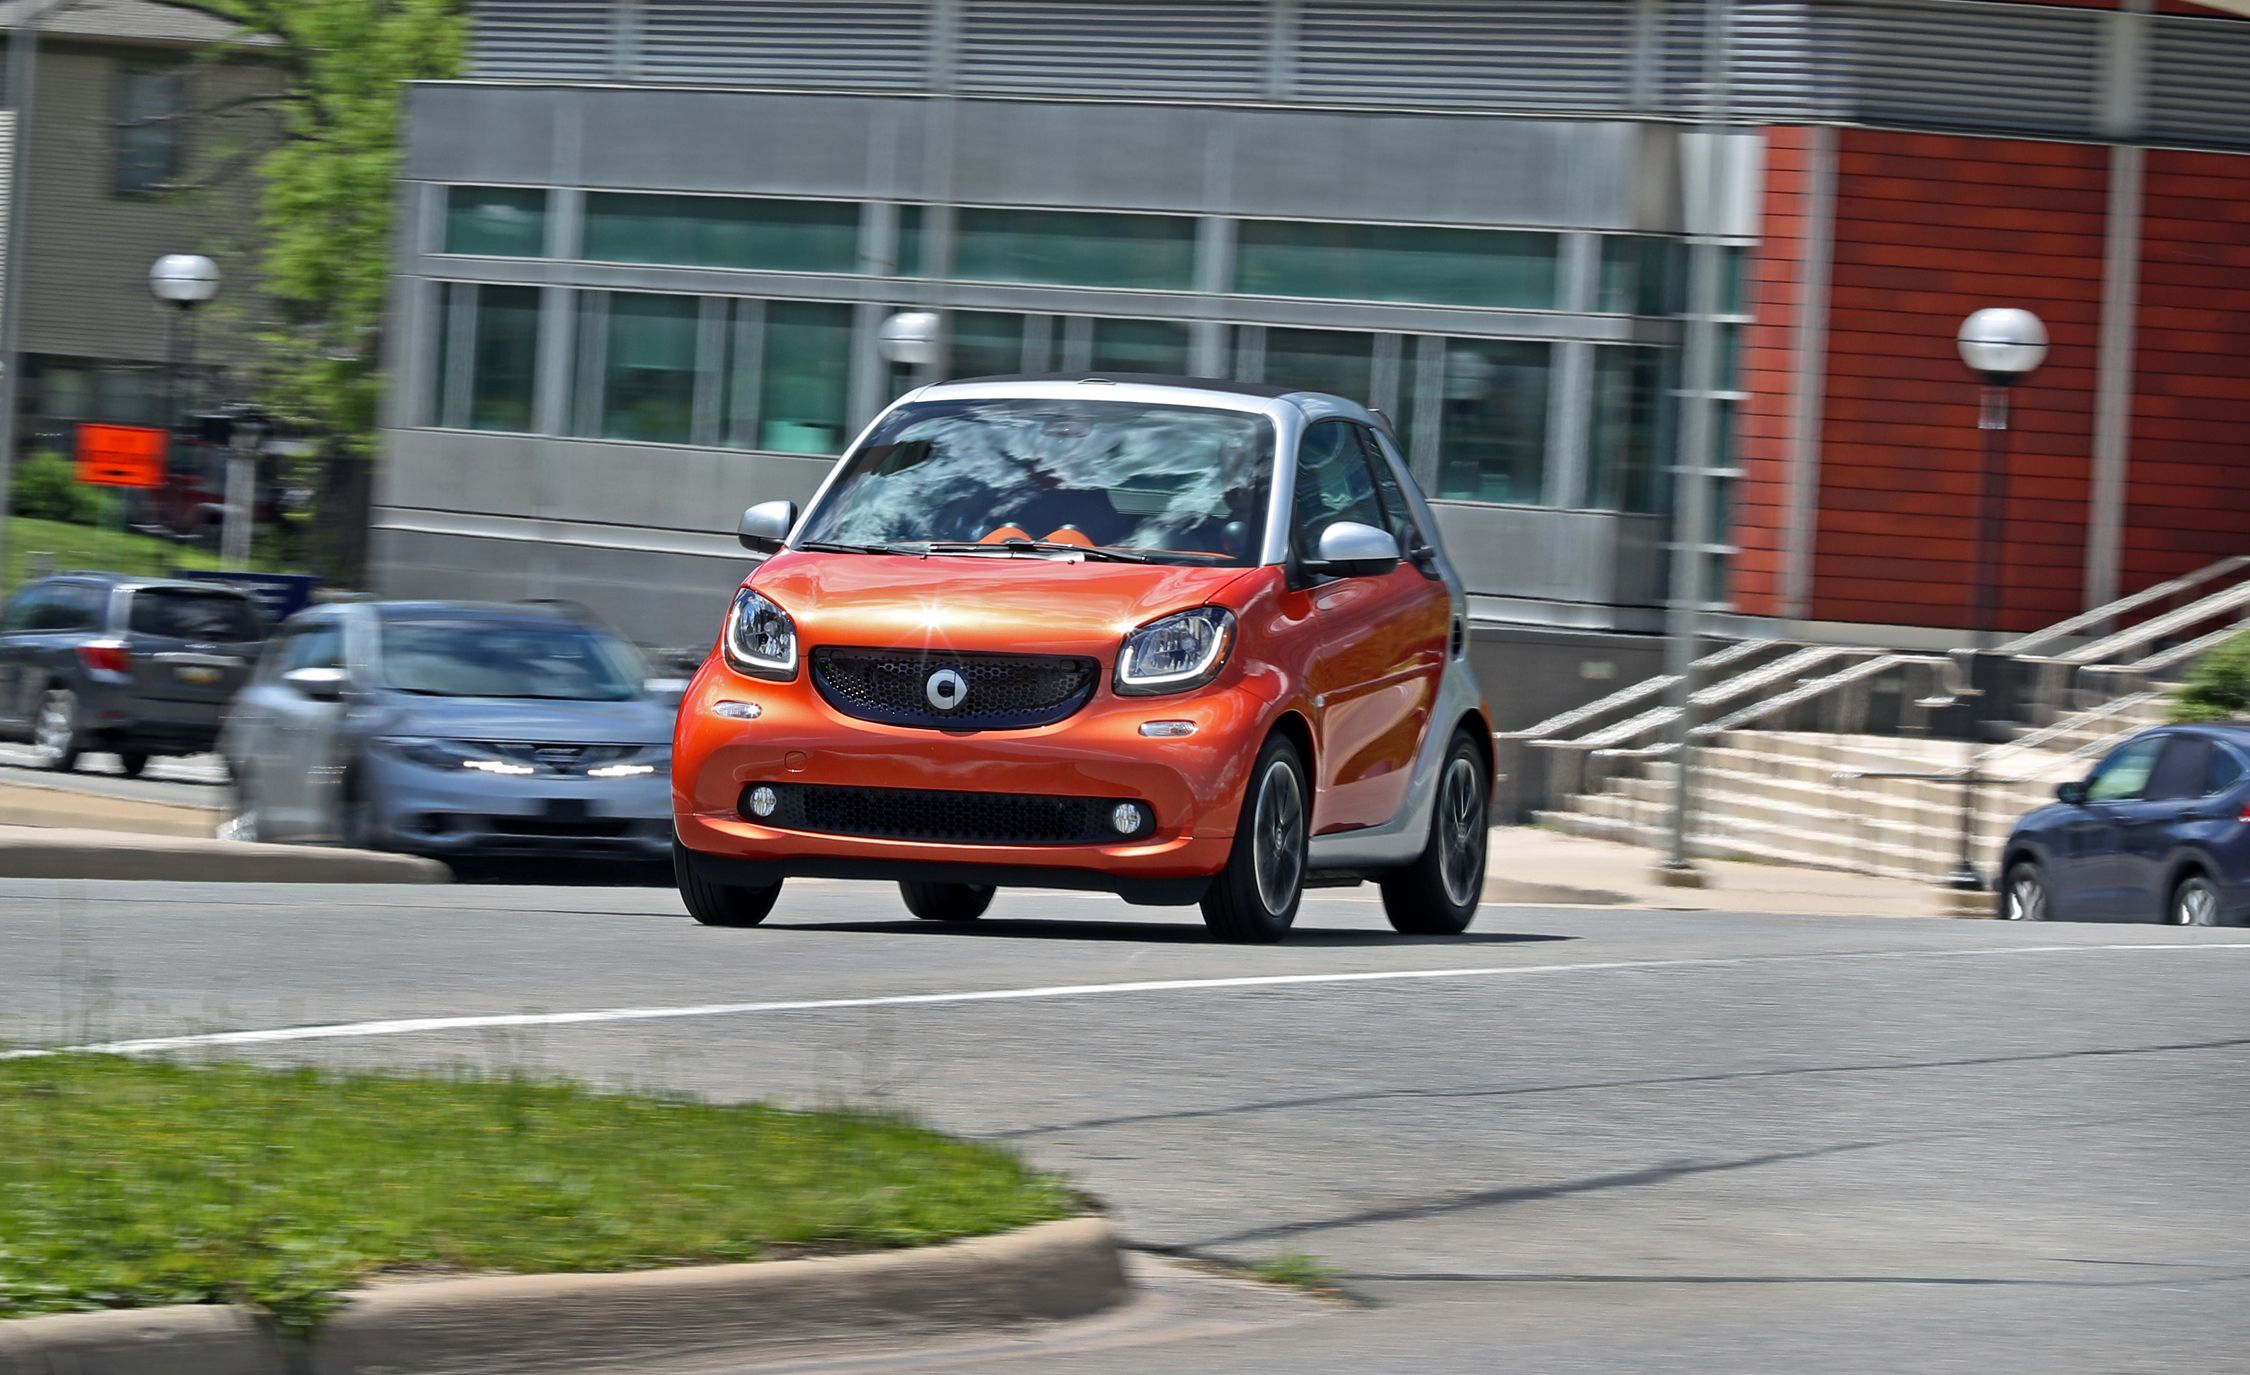 2017 Smart Fortwo Cabriolet Automatic